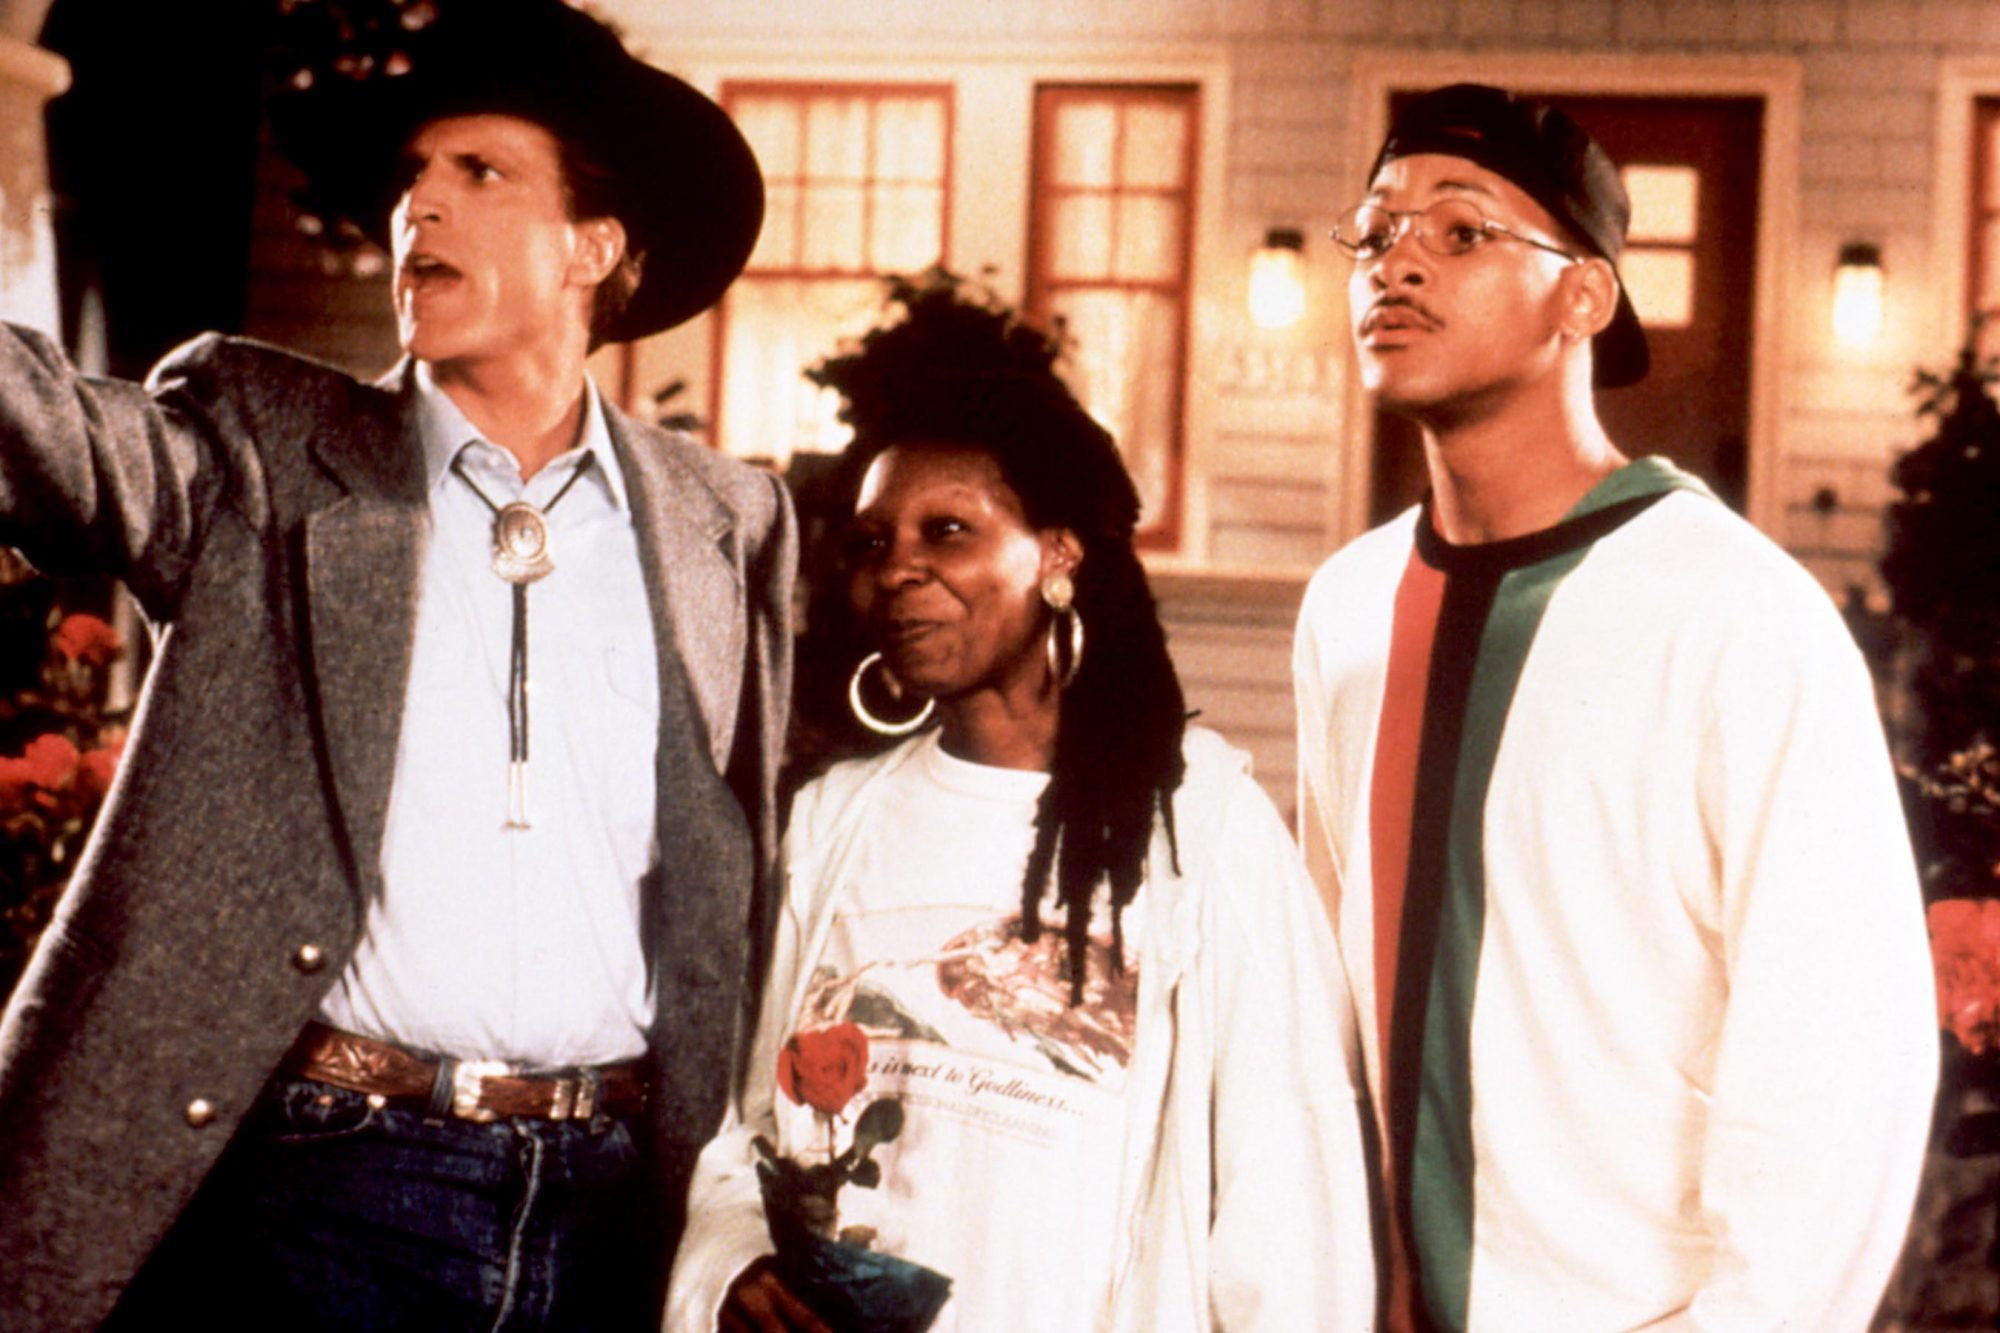 MADE IN AMERICA, Ted Danson, Whoopi Goldberg, Will Smith, 1993, cowboy hat